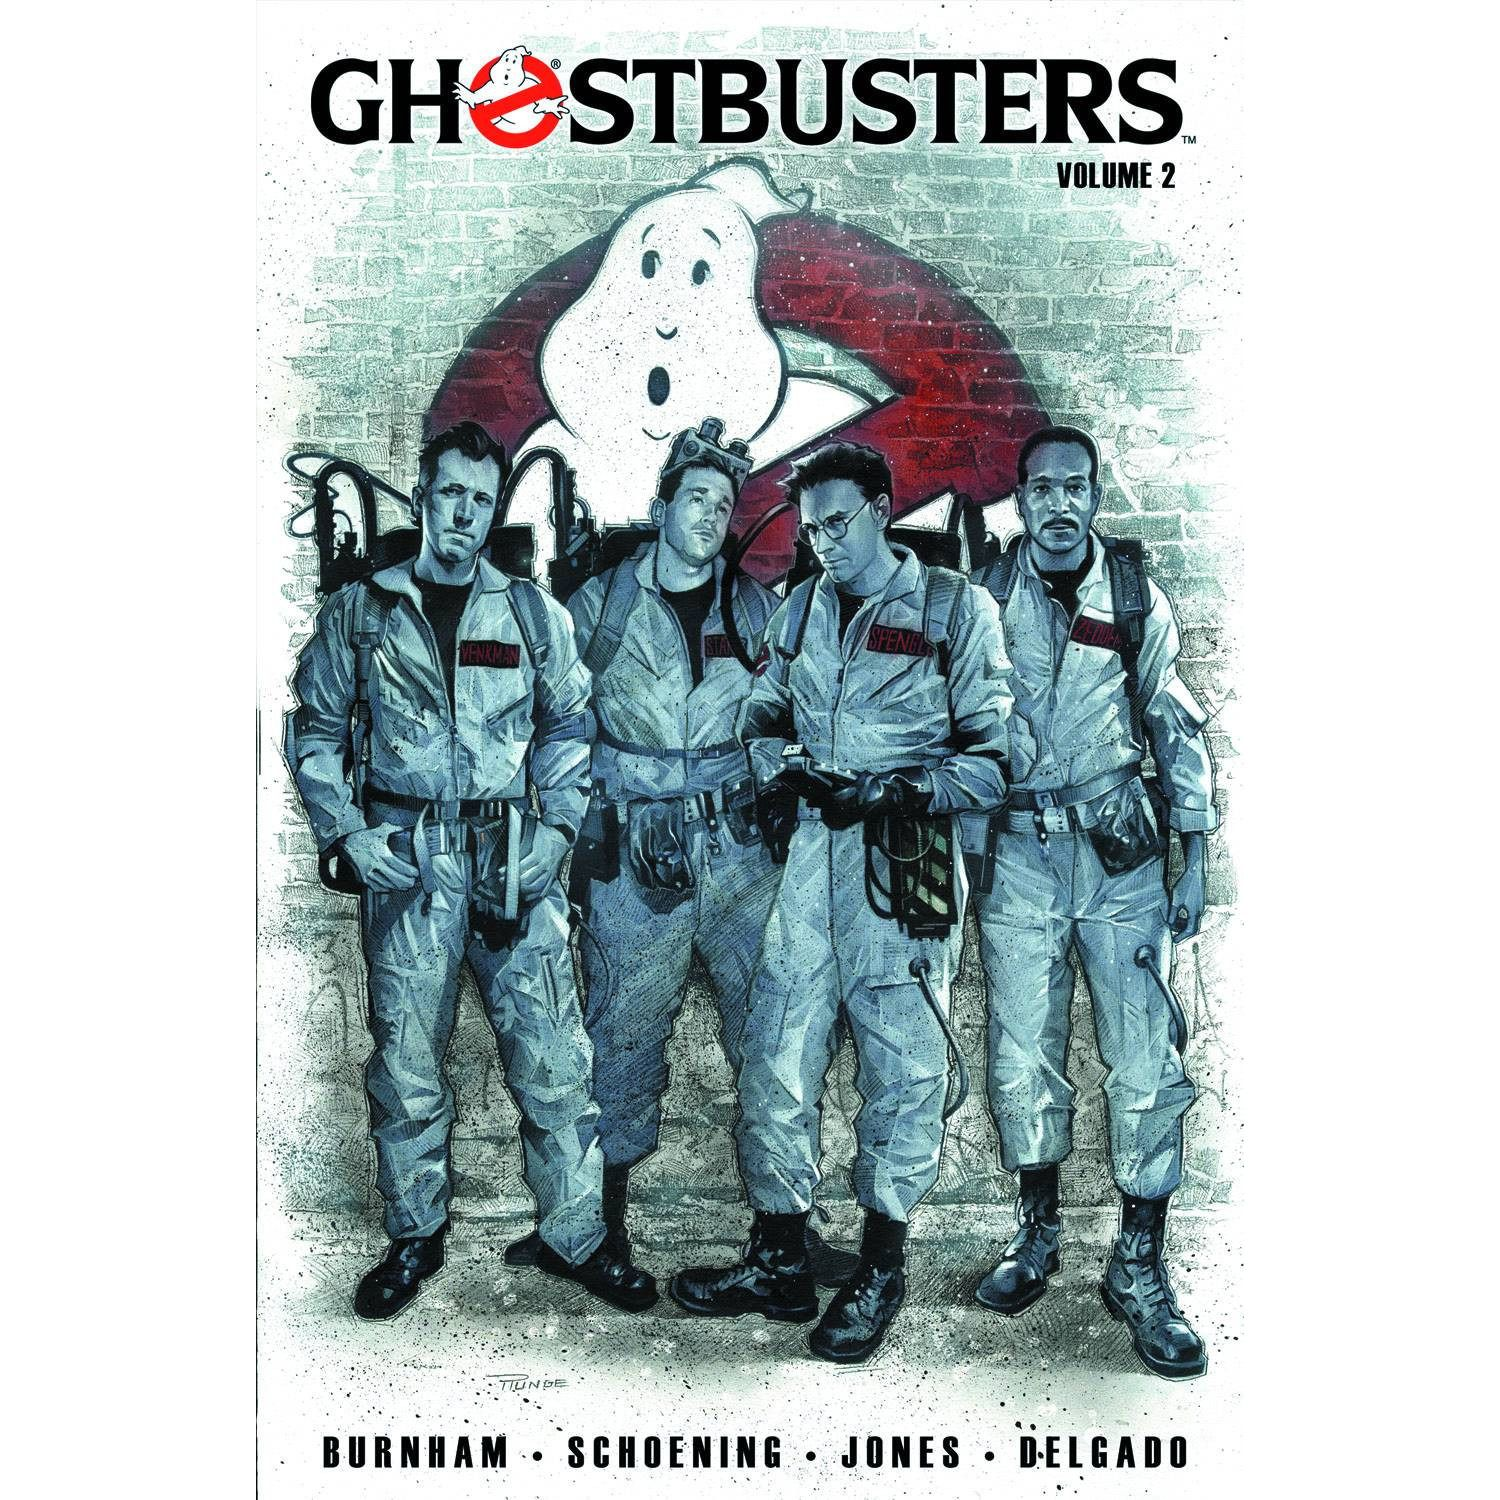 Ghostbusters TP Vol 02 The Most Magical Place On Earth Uncanny!